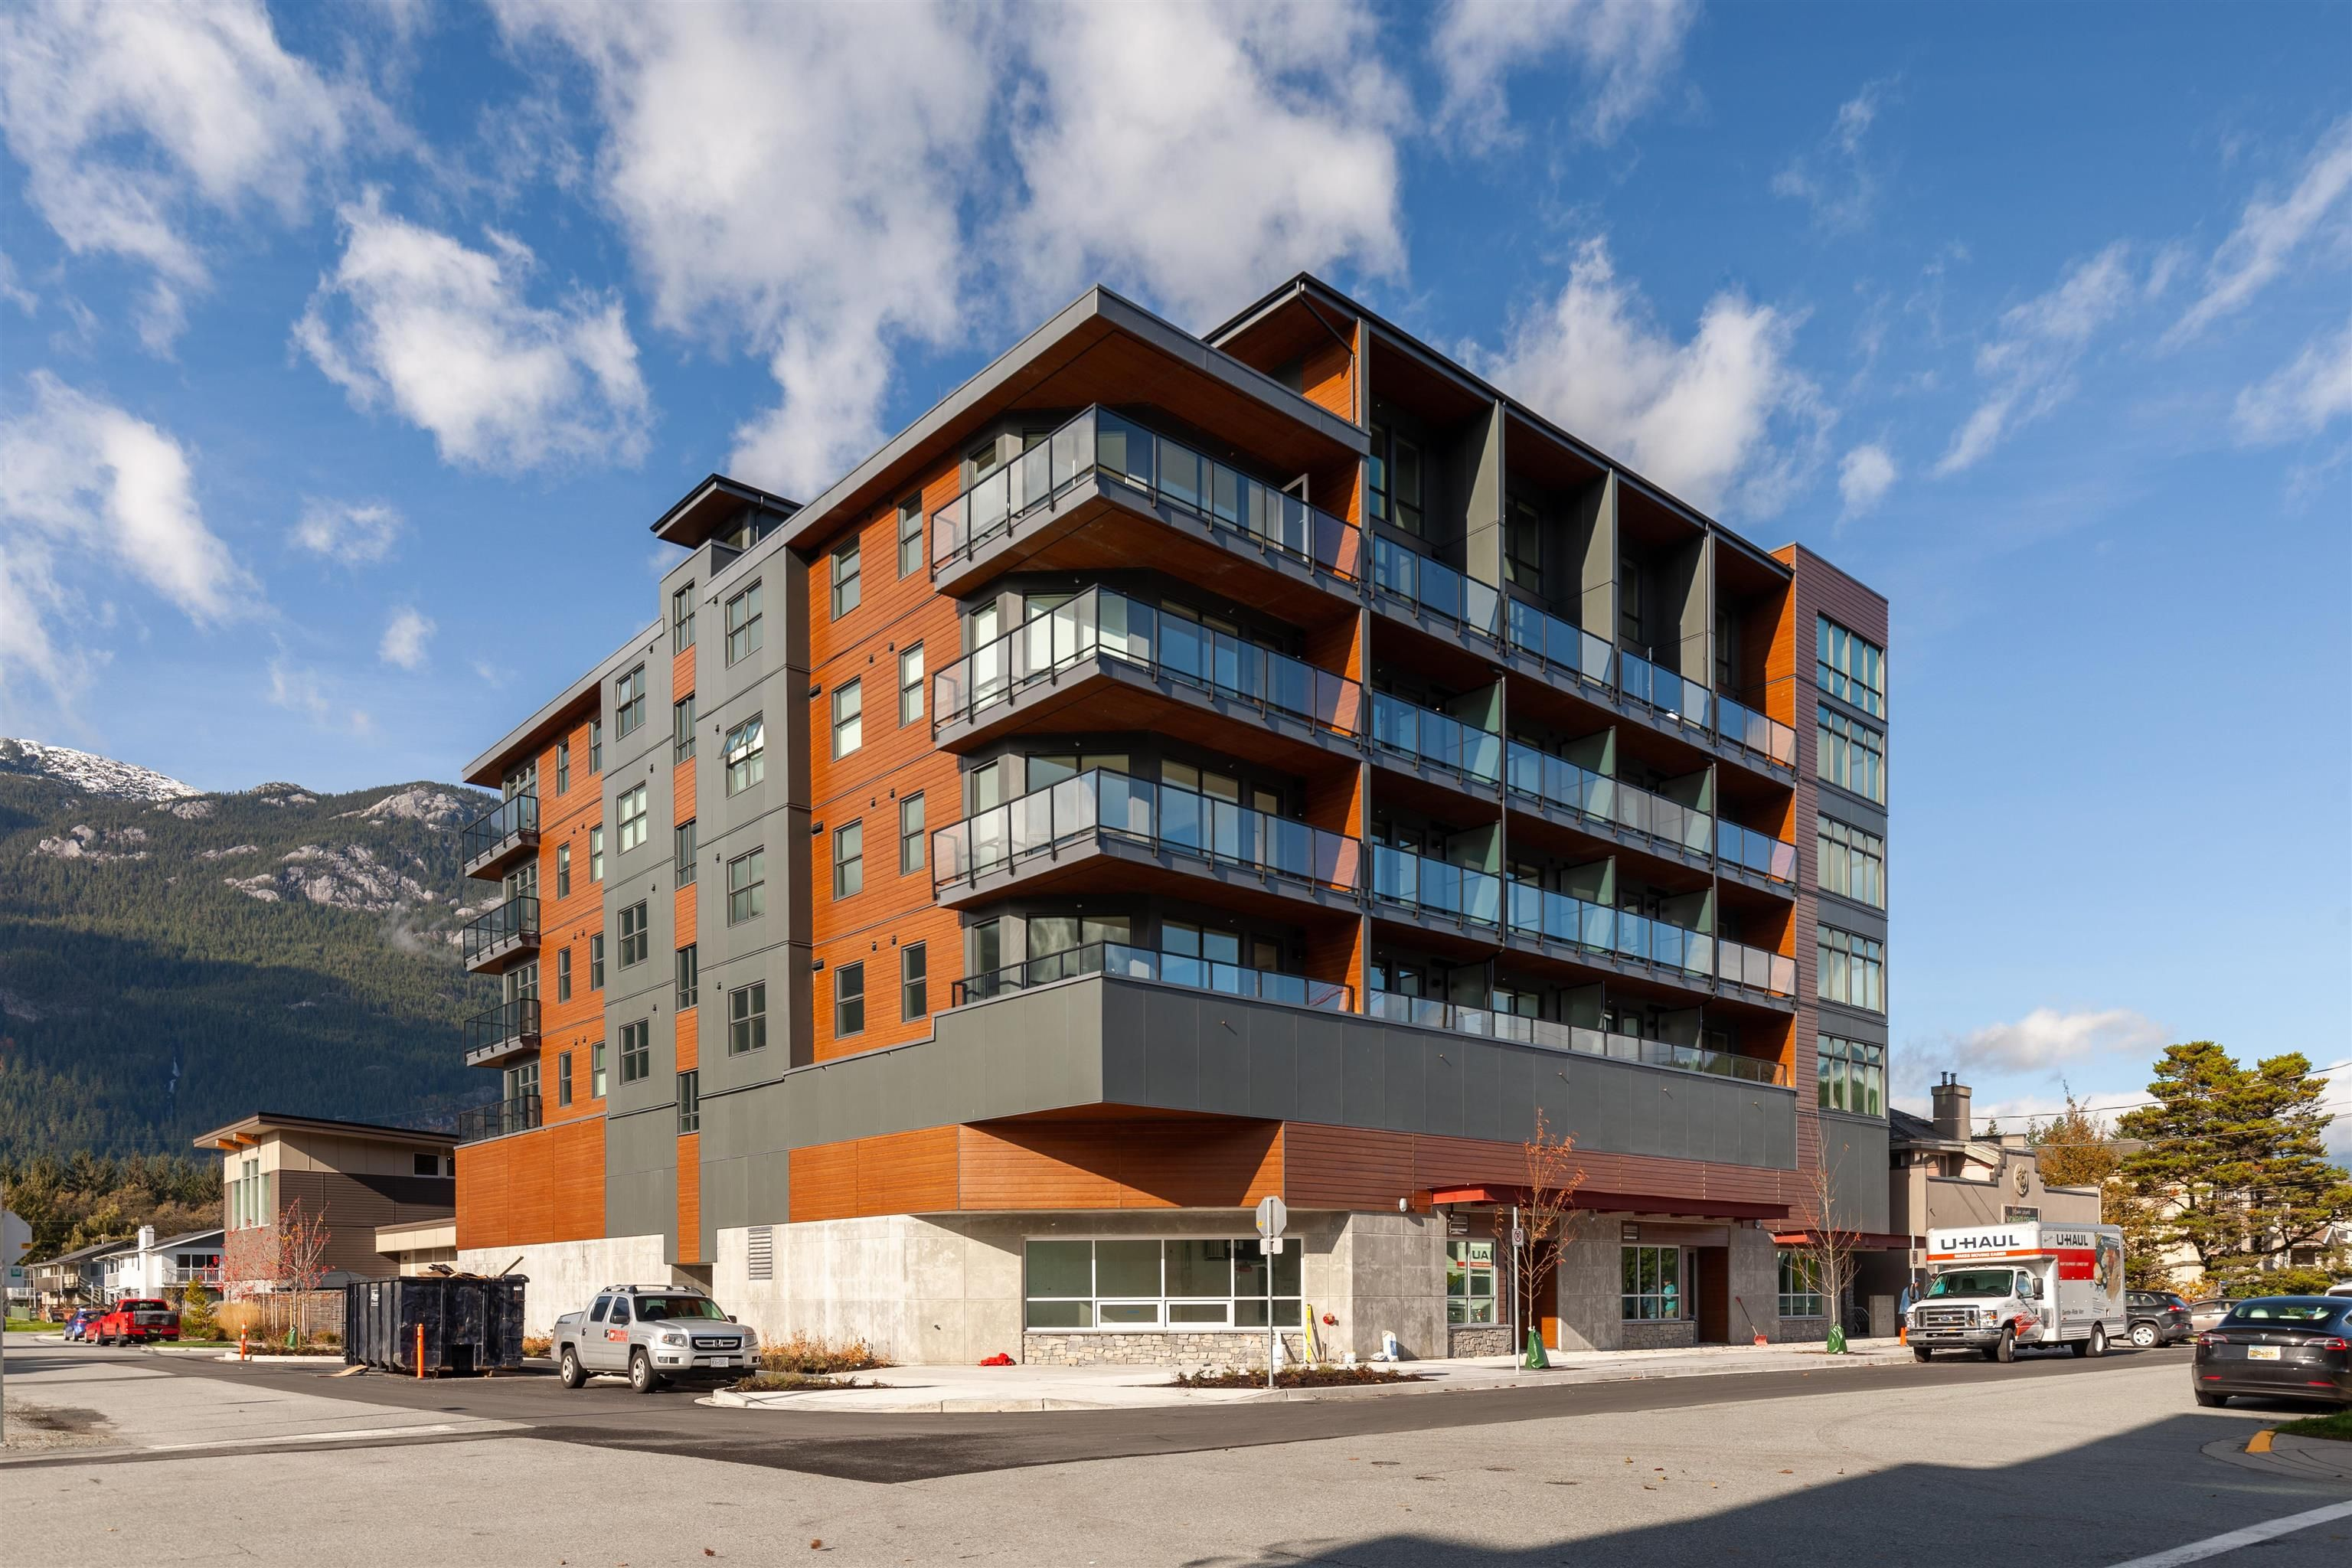 """Main Photo: 312 38013 THIRD Avenue in Squamish: Downtown SQ Condo for sale in """"THE LAUREN"""" : MLS®# R2614913"""